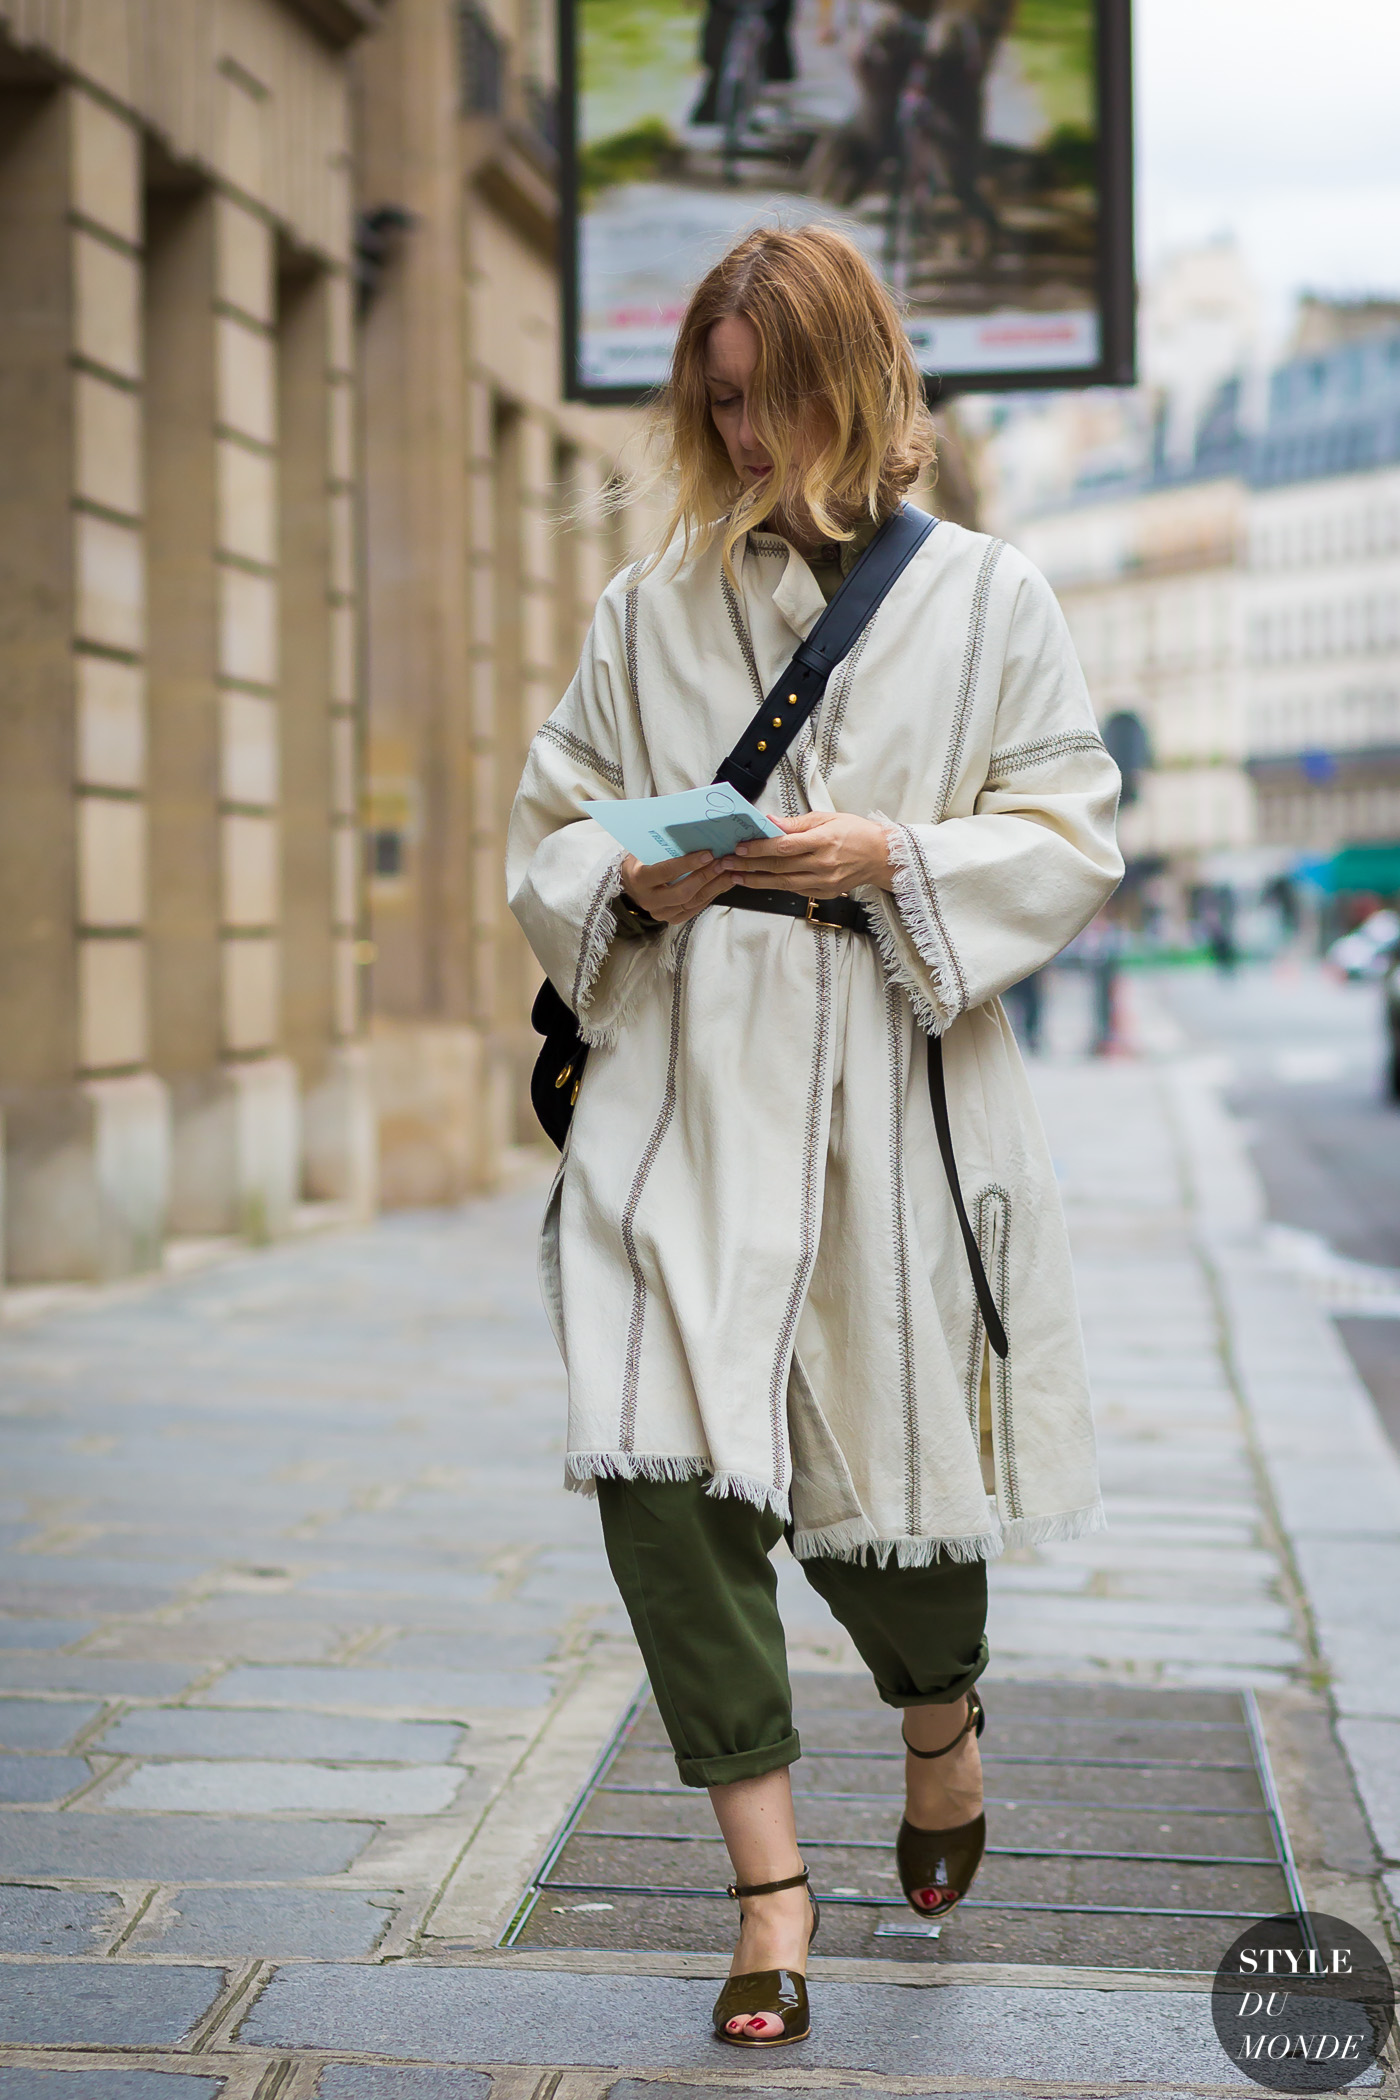 Suzanne Koller Street Style Street Fashion Streetsnaps by STYLEDUMONDE Street Style Fashion Photography